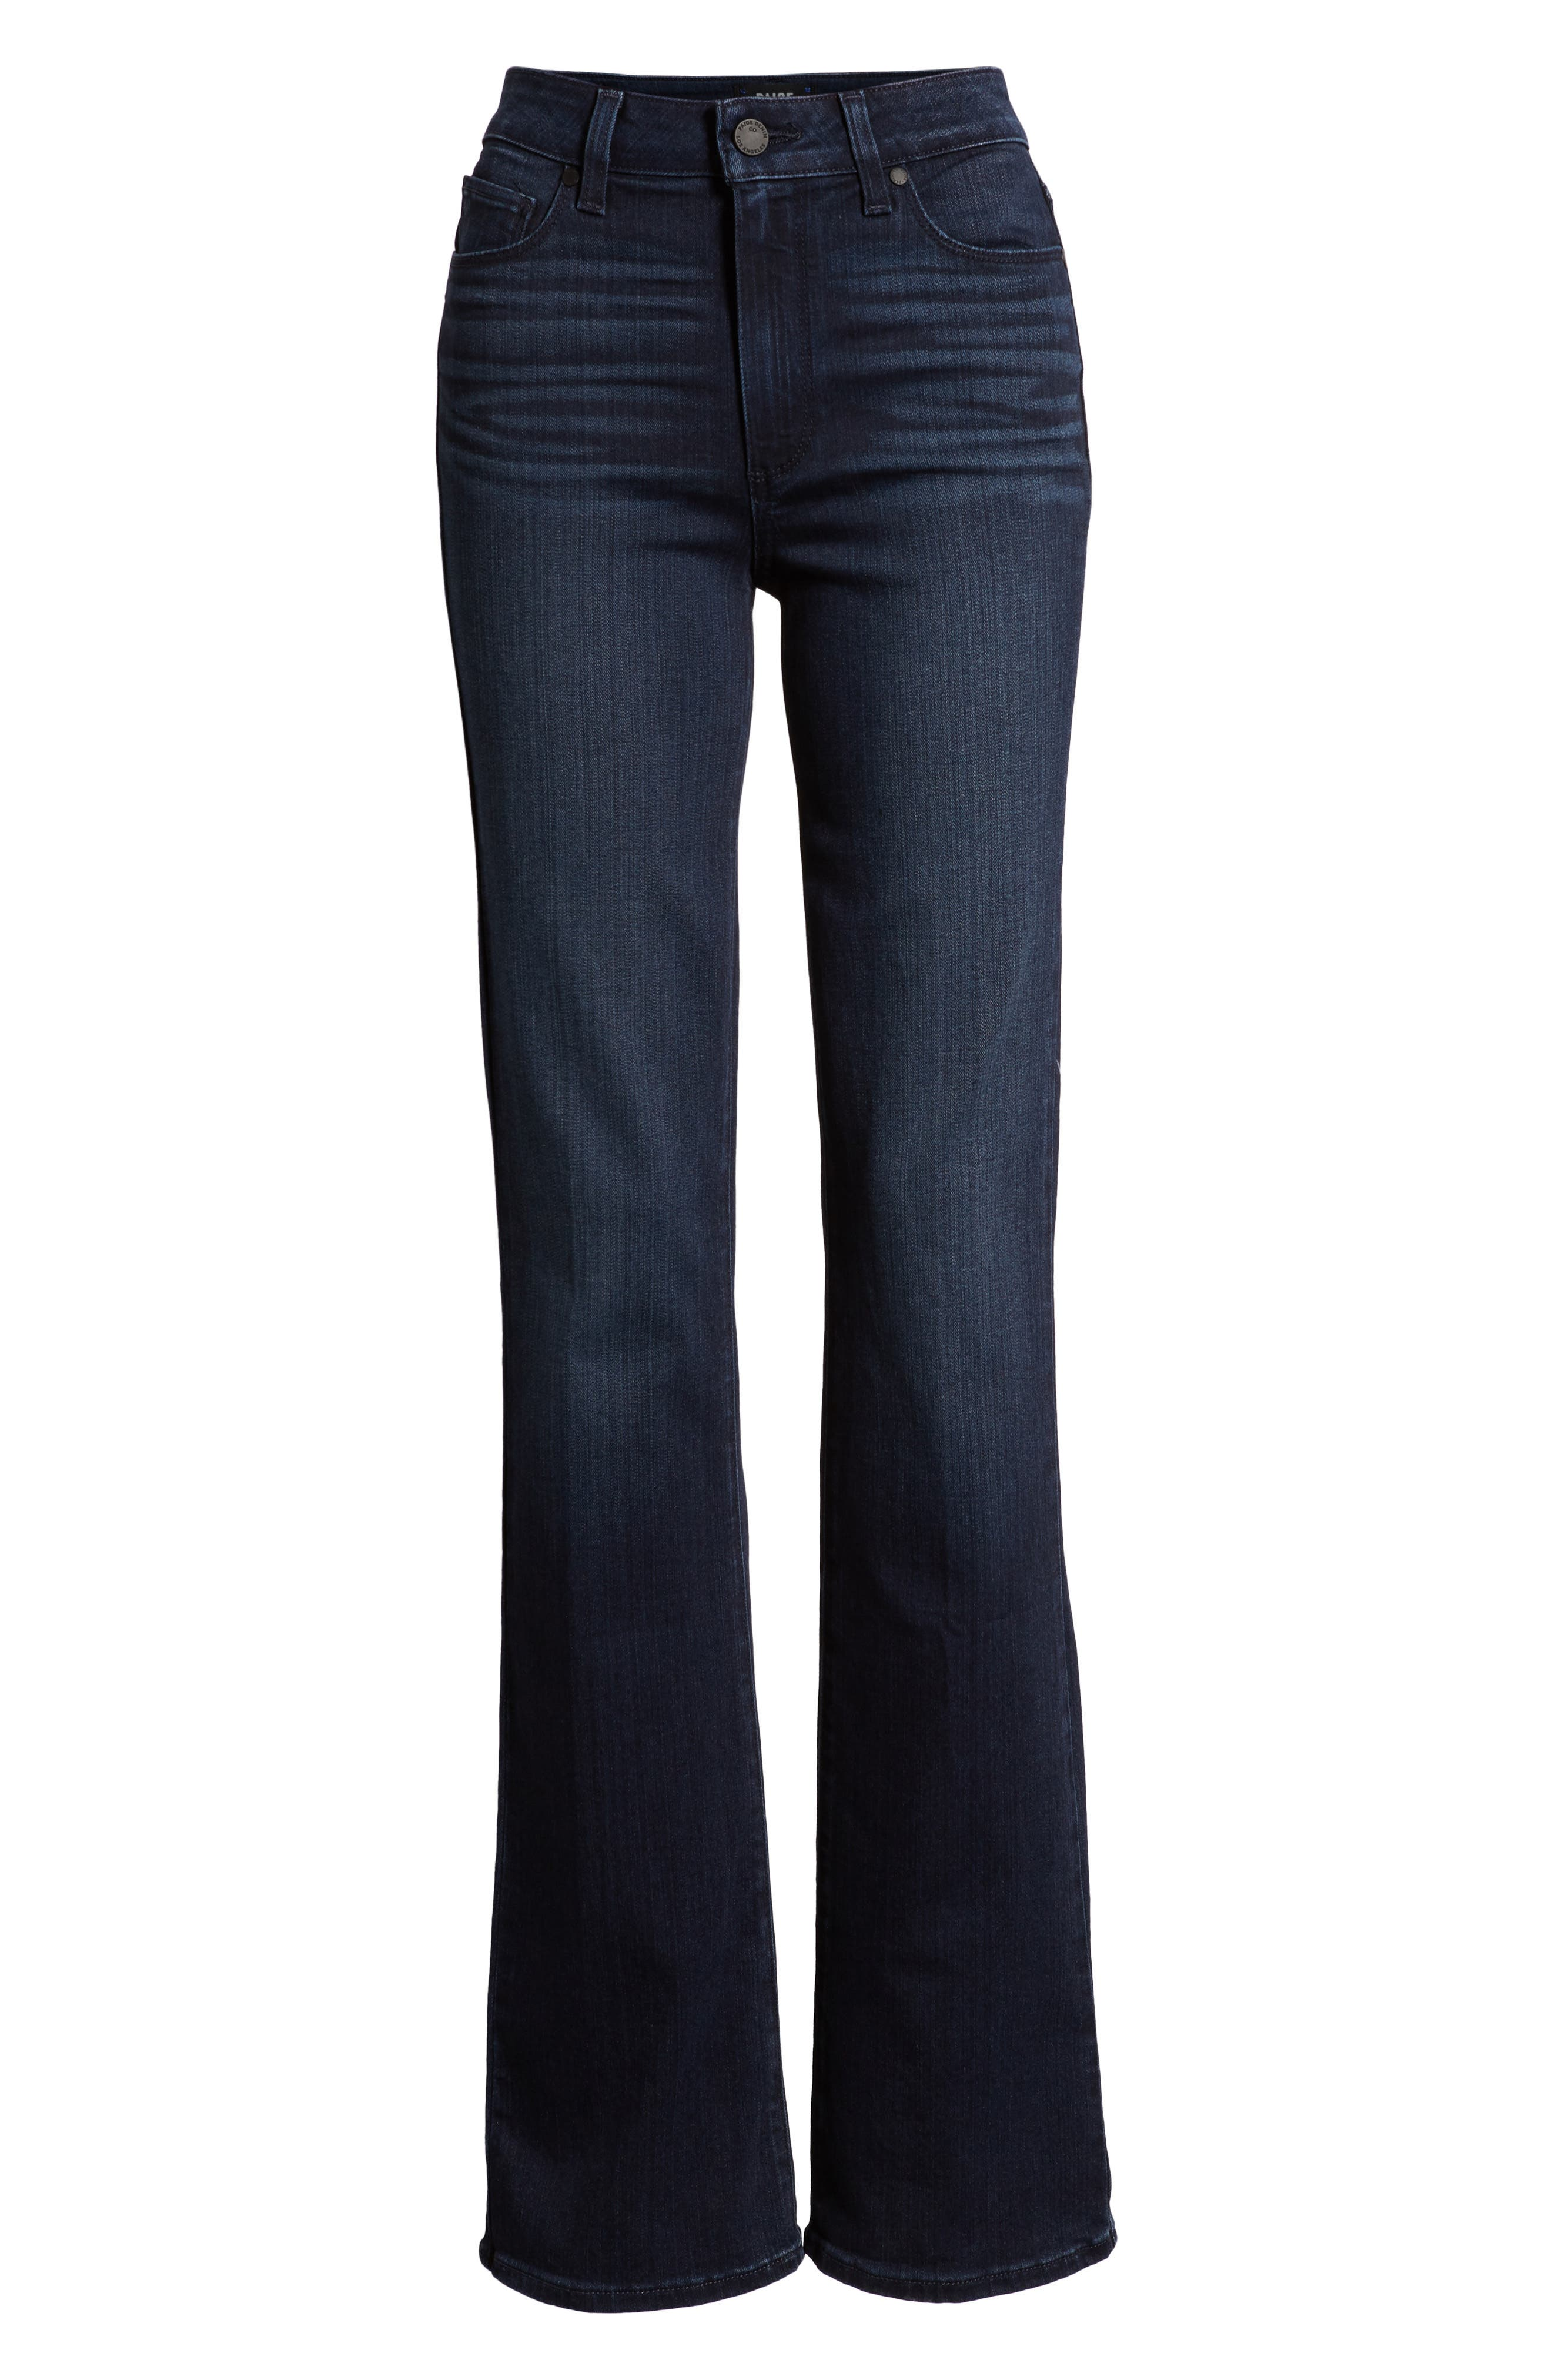 Manhattan High Waist Bootcut Jeans,                             Alternate thumbnail 7, color,                             401